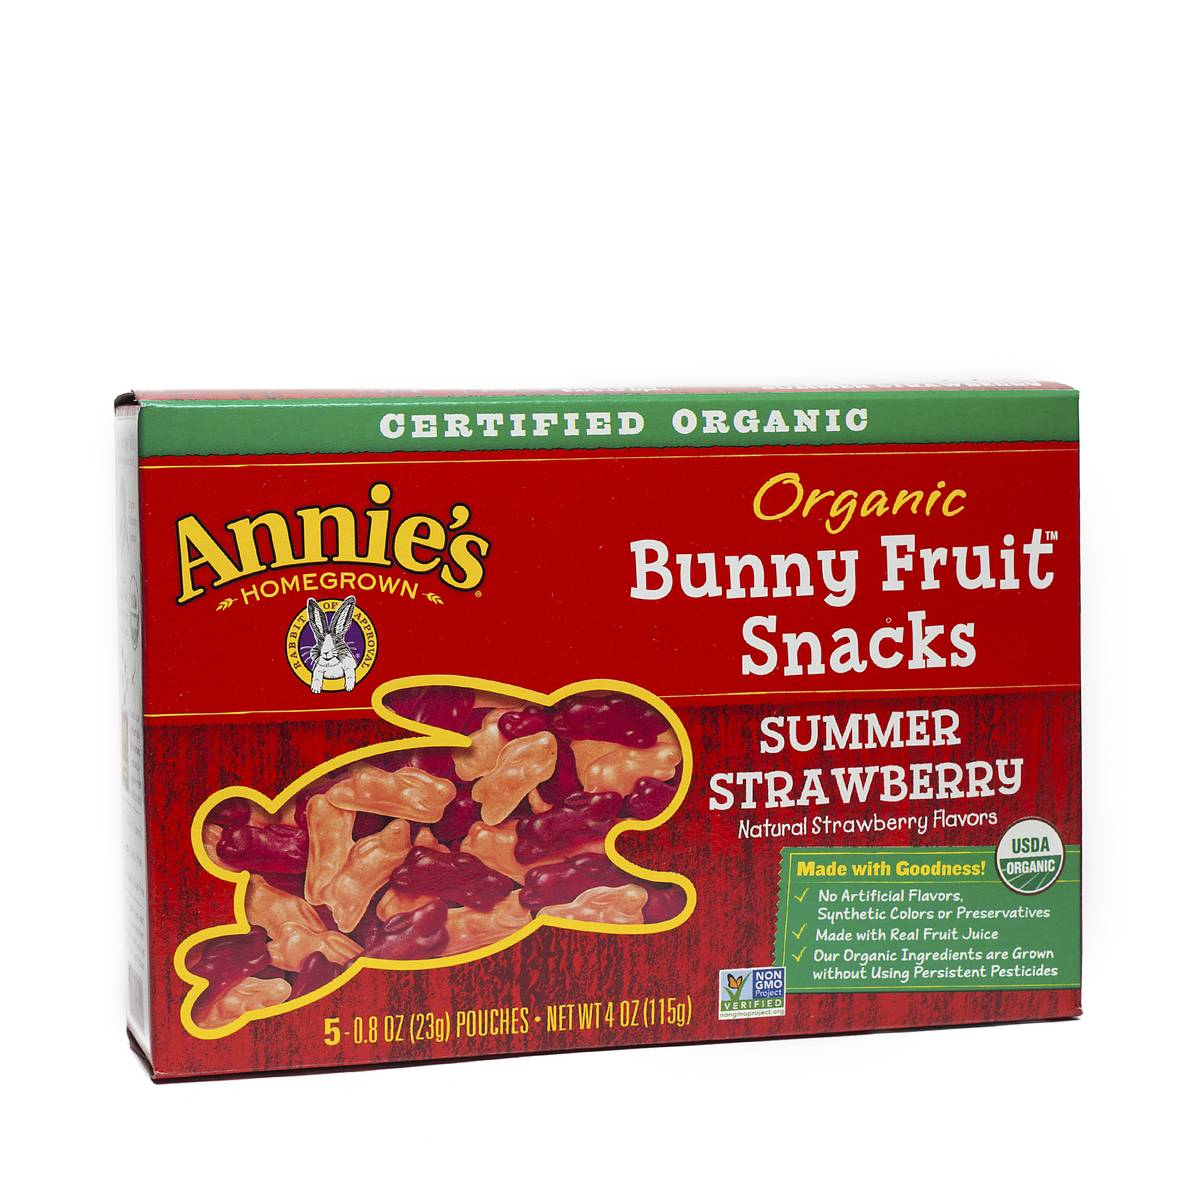 Annie's Homegrown Organic Bunny Fruit Snacks - Summer Strawberry - Thrive Market